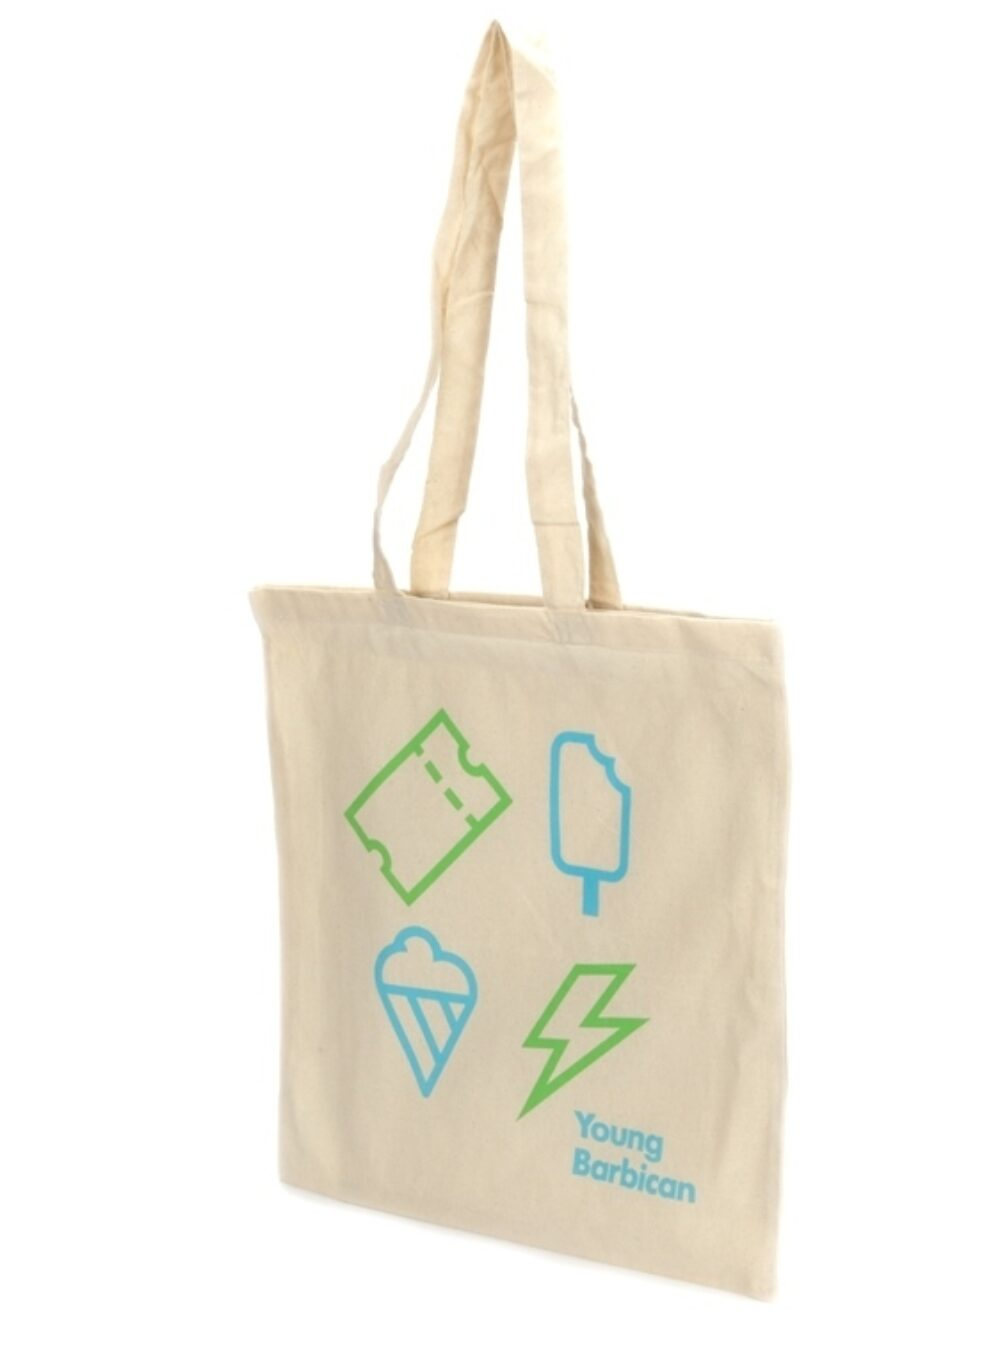 Create a Stunning Promotional Tote Bag in Just 7 Days!